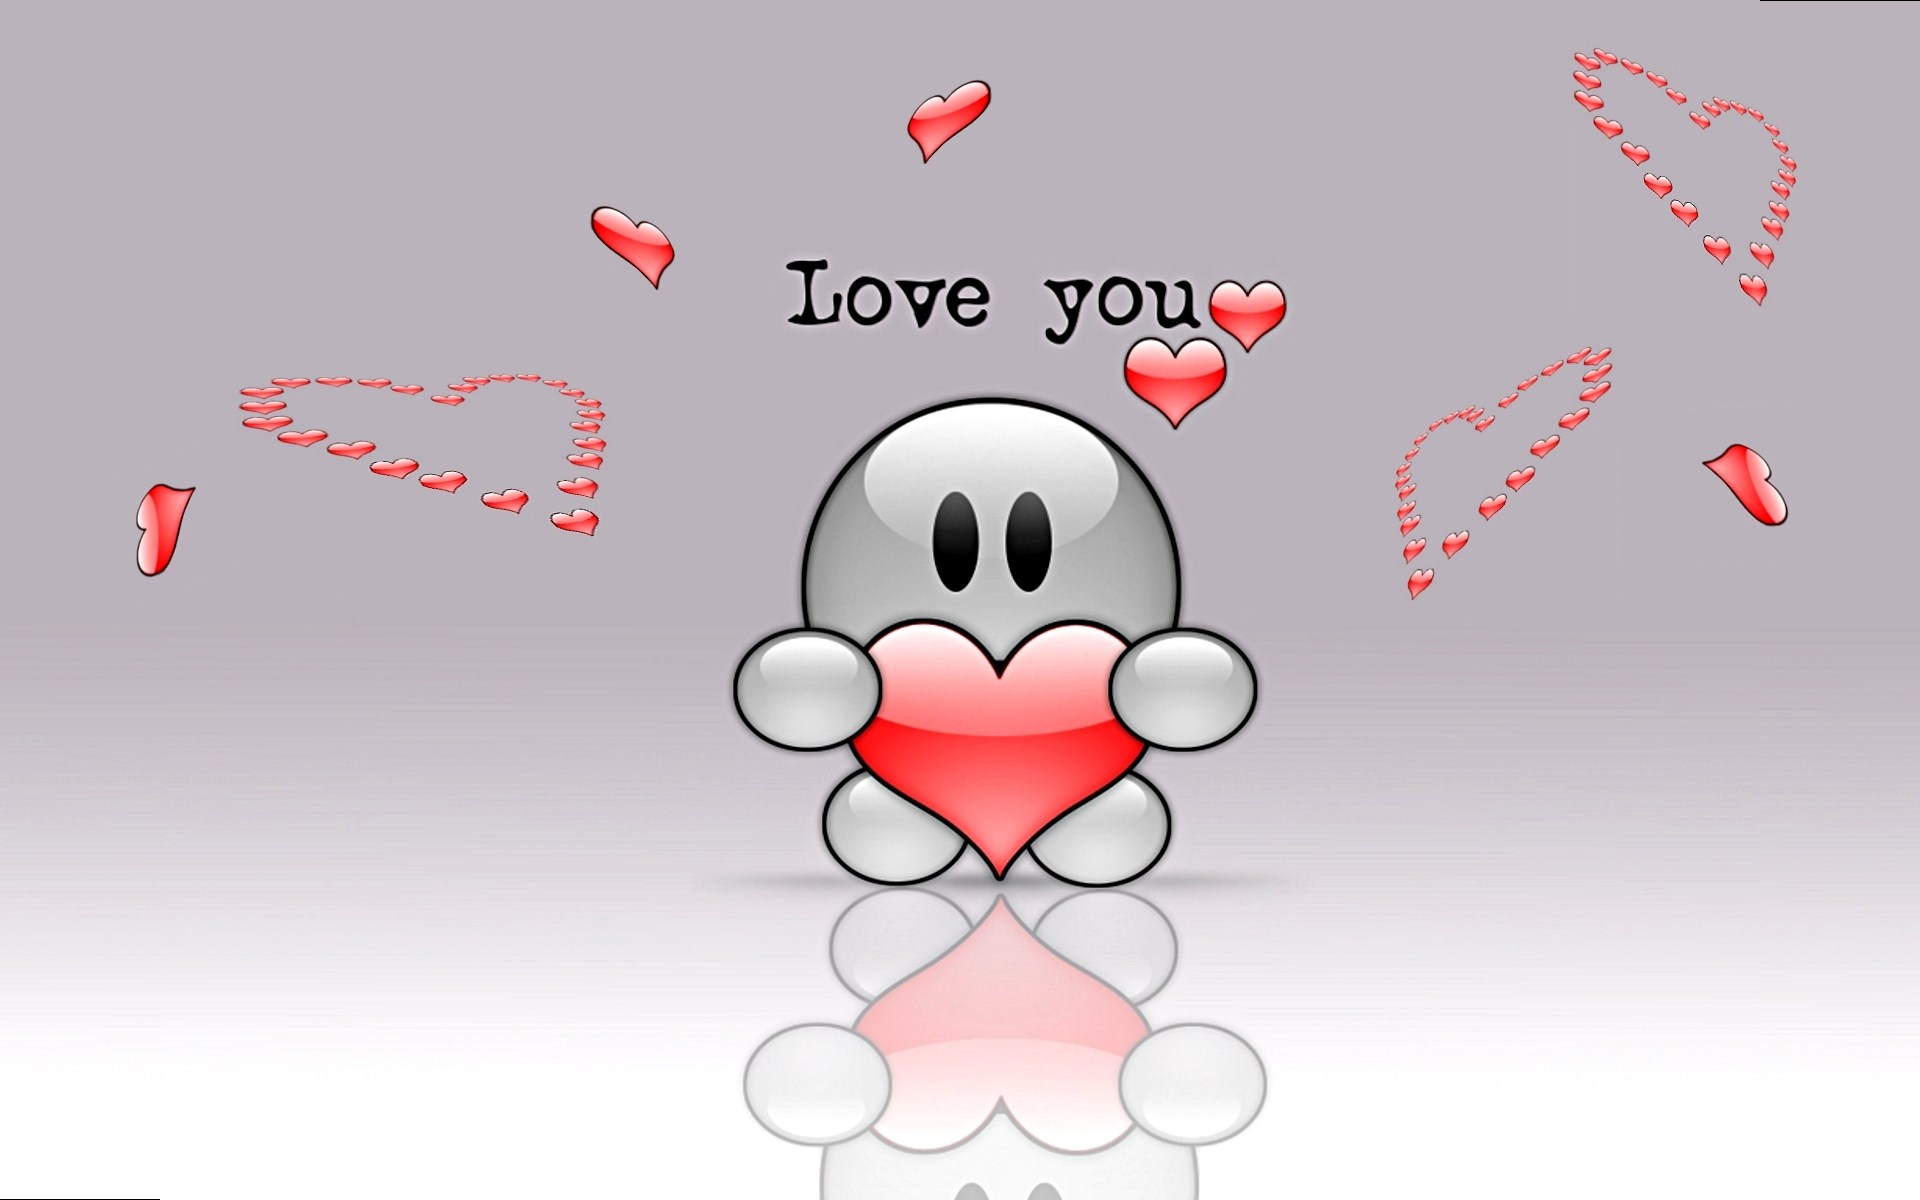 Love You Bilder Free Love You, Download Free Love You Png Images, Free Cliparts On Clipart Library